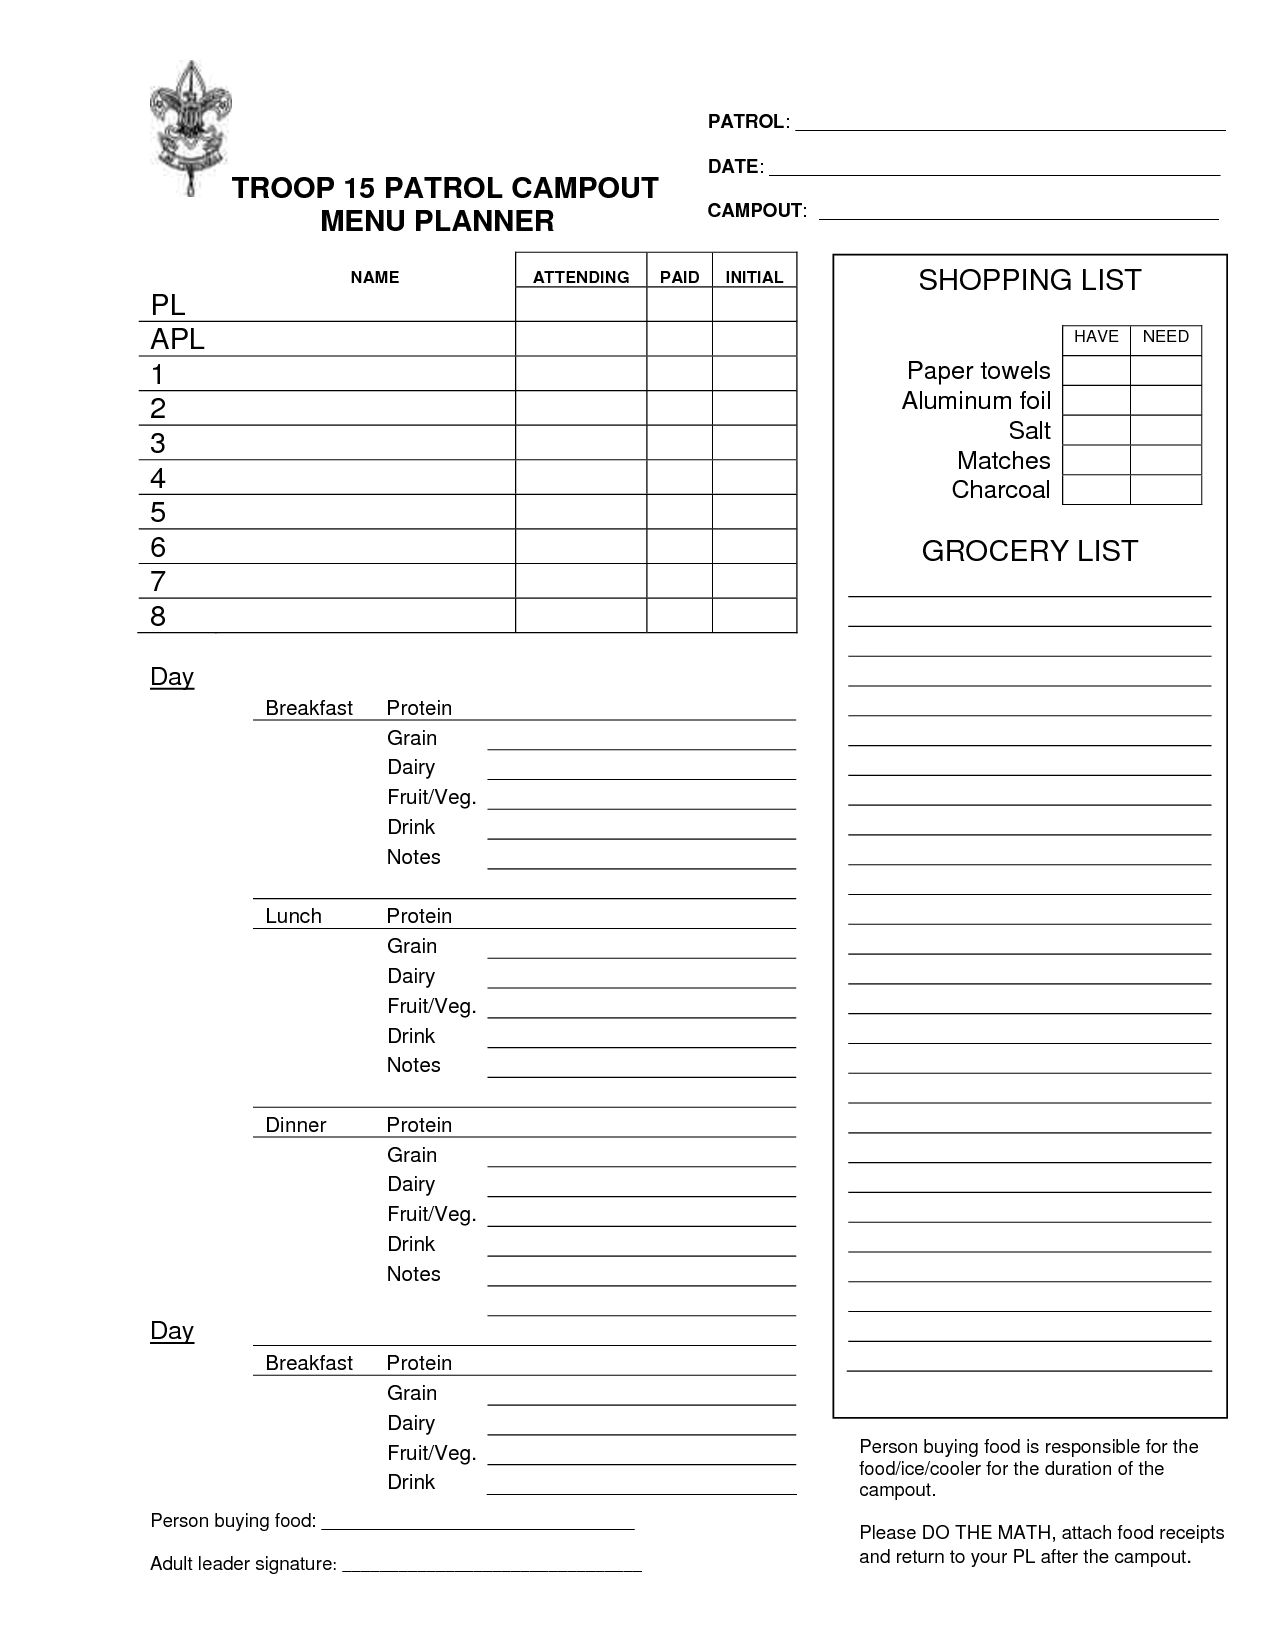 Worksheets Eagle Scout Requirements Worksheet boy scout campout planning worksheet google search stuff search